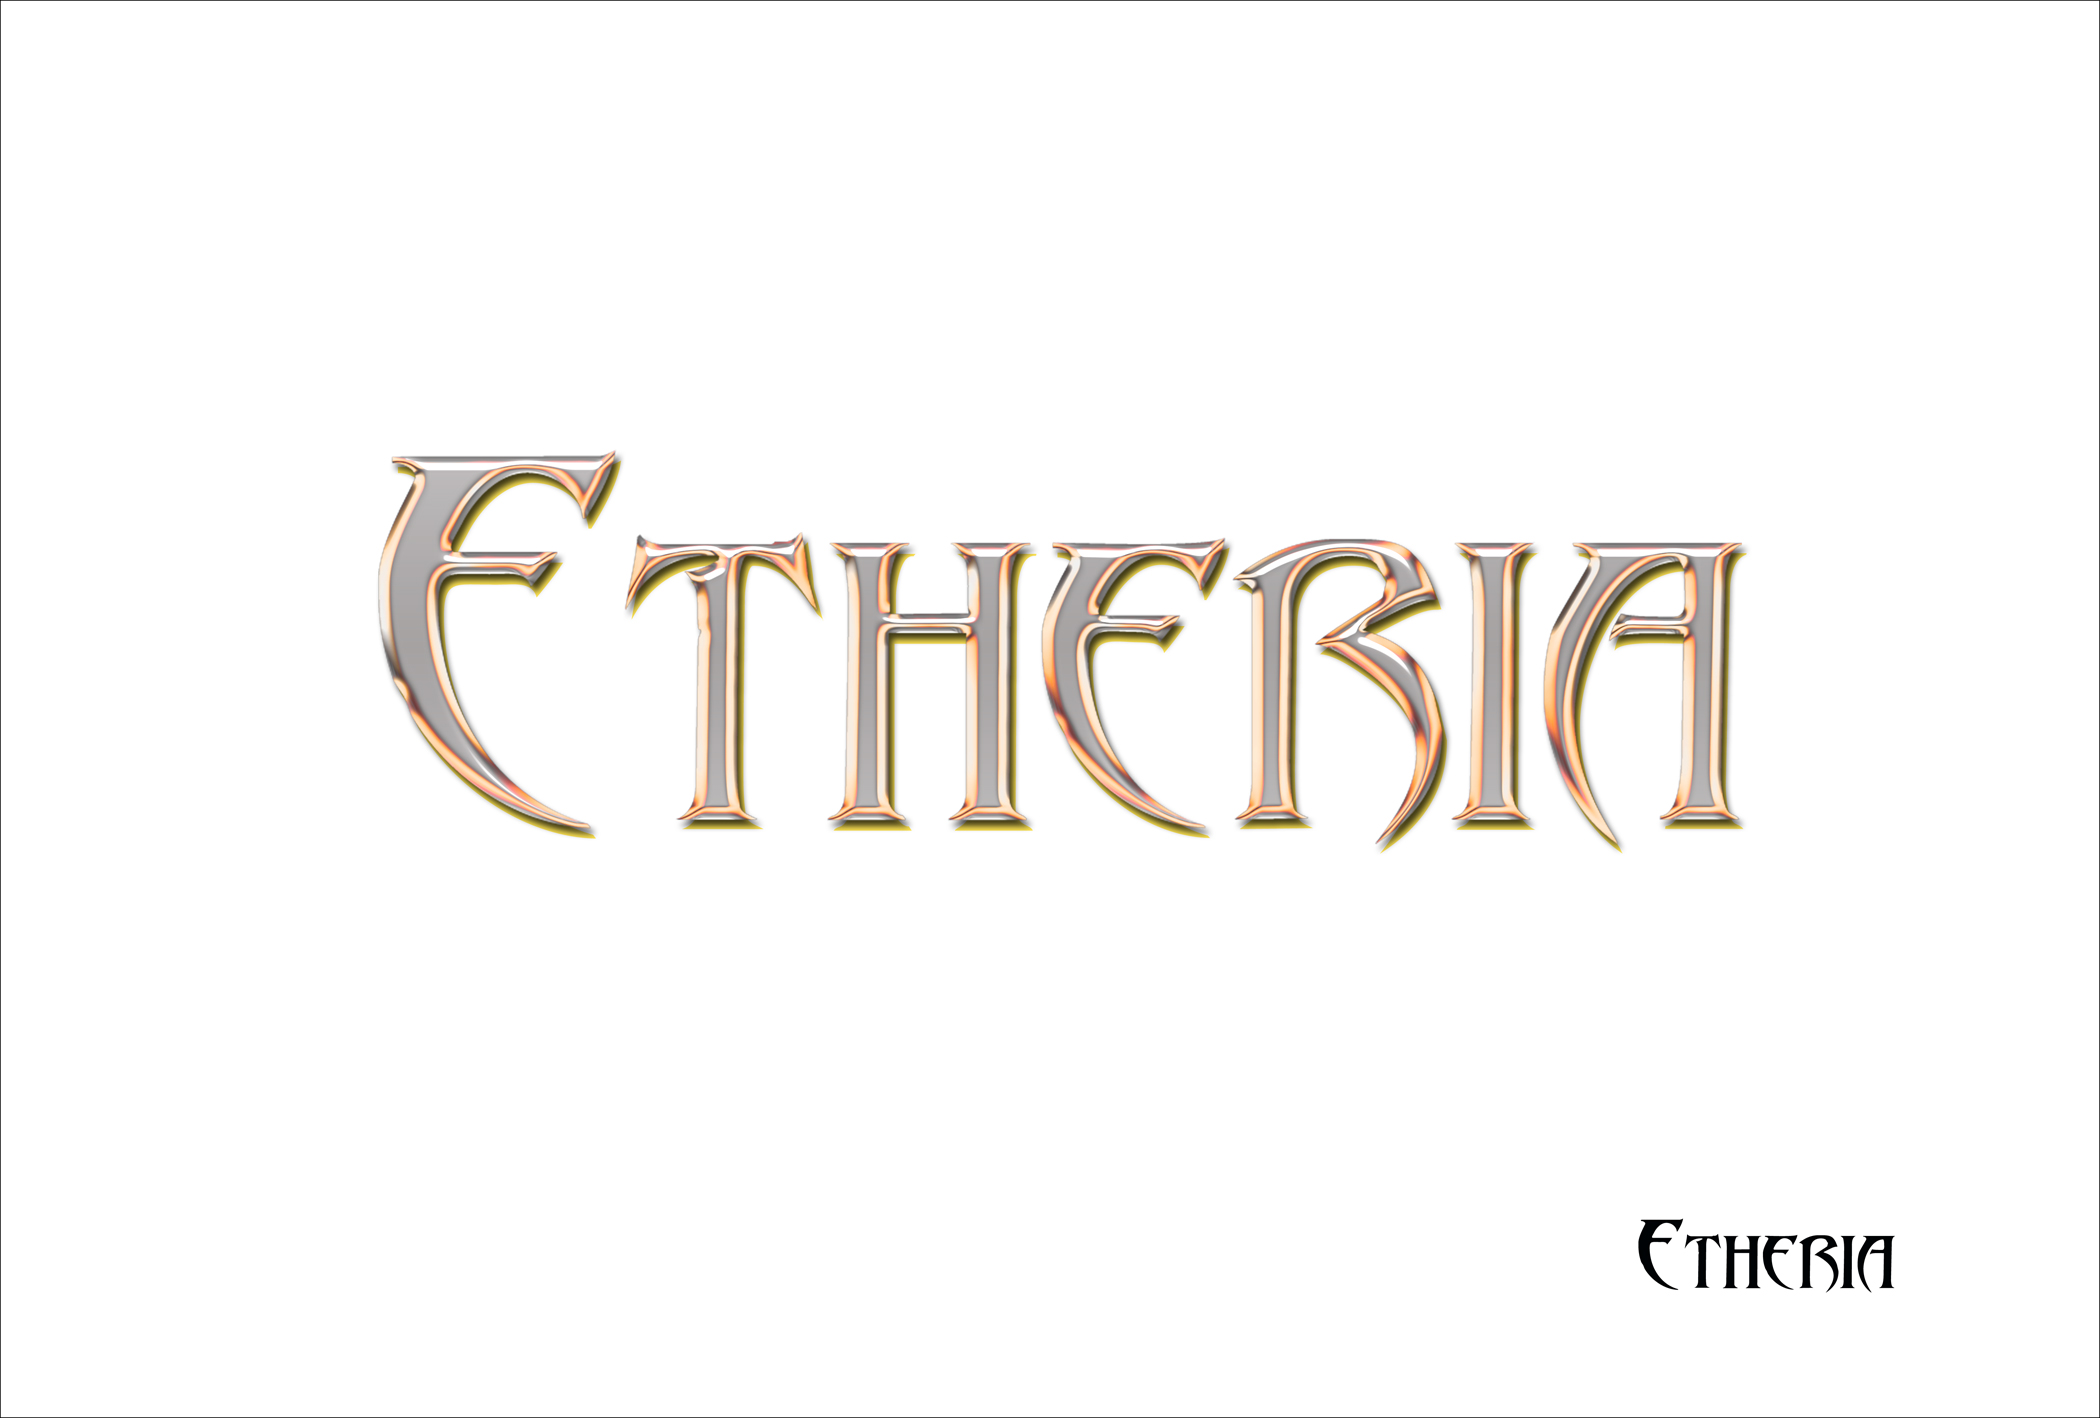 Etheria+logo+1.jpg